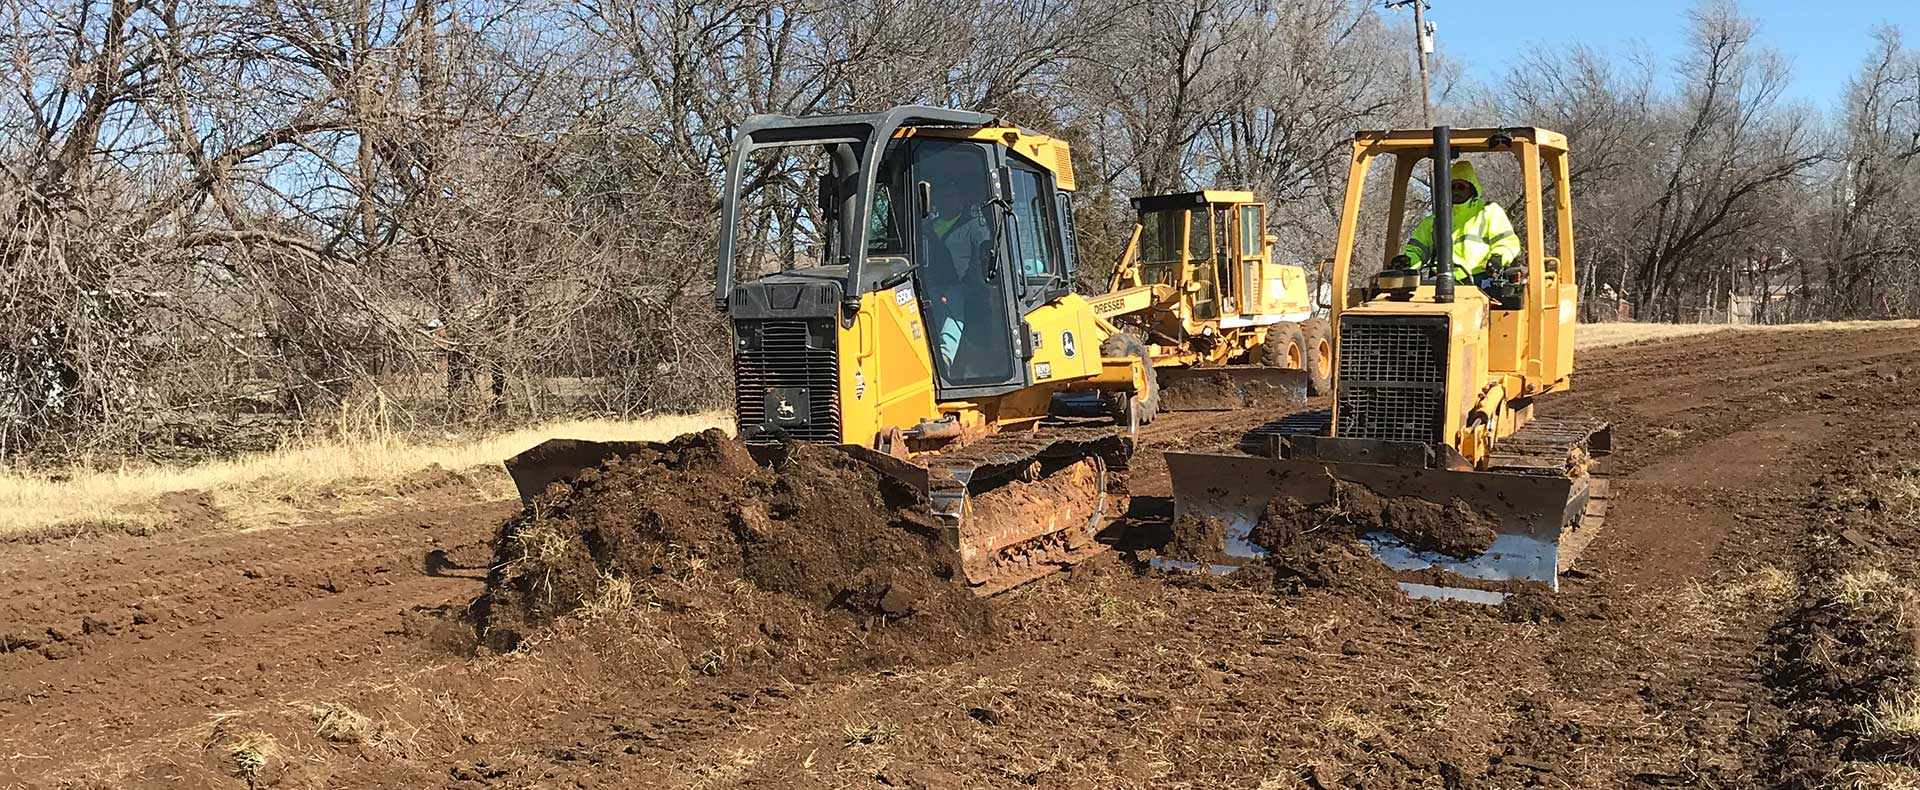 Excavating Contractors: Who They Are and What They Do